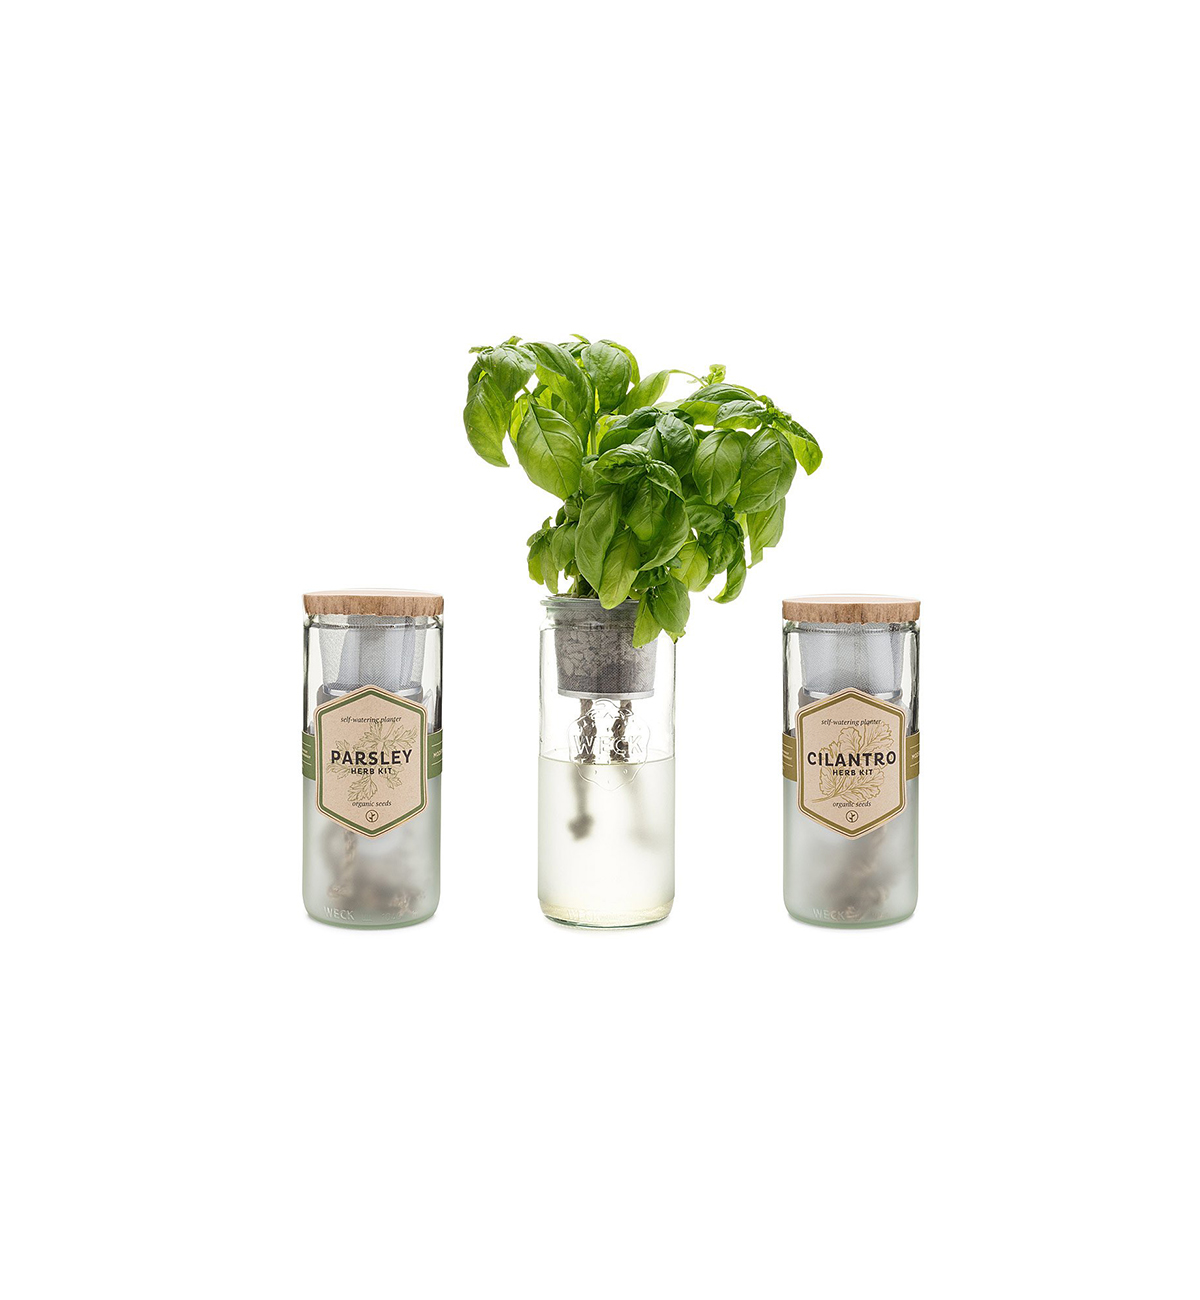 Herb Kits For Indoors: This Indoor Herb Garden Kit Makes Growing Basil